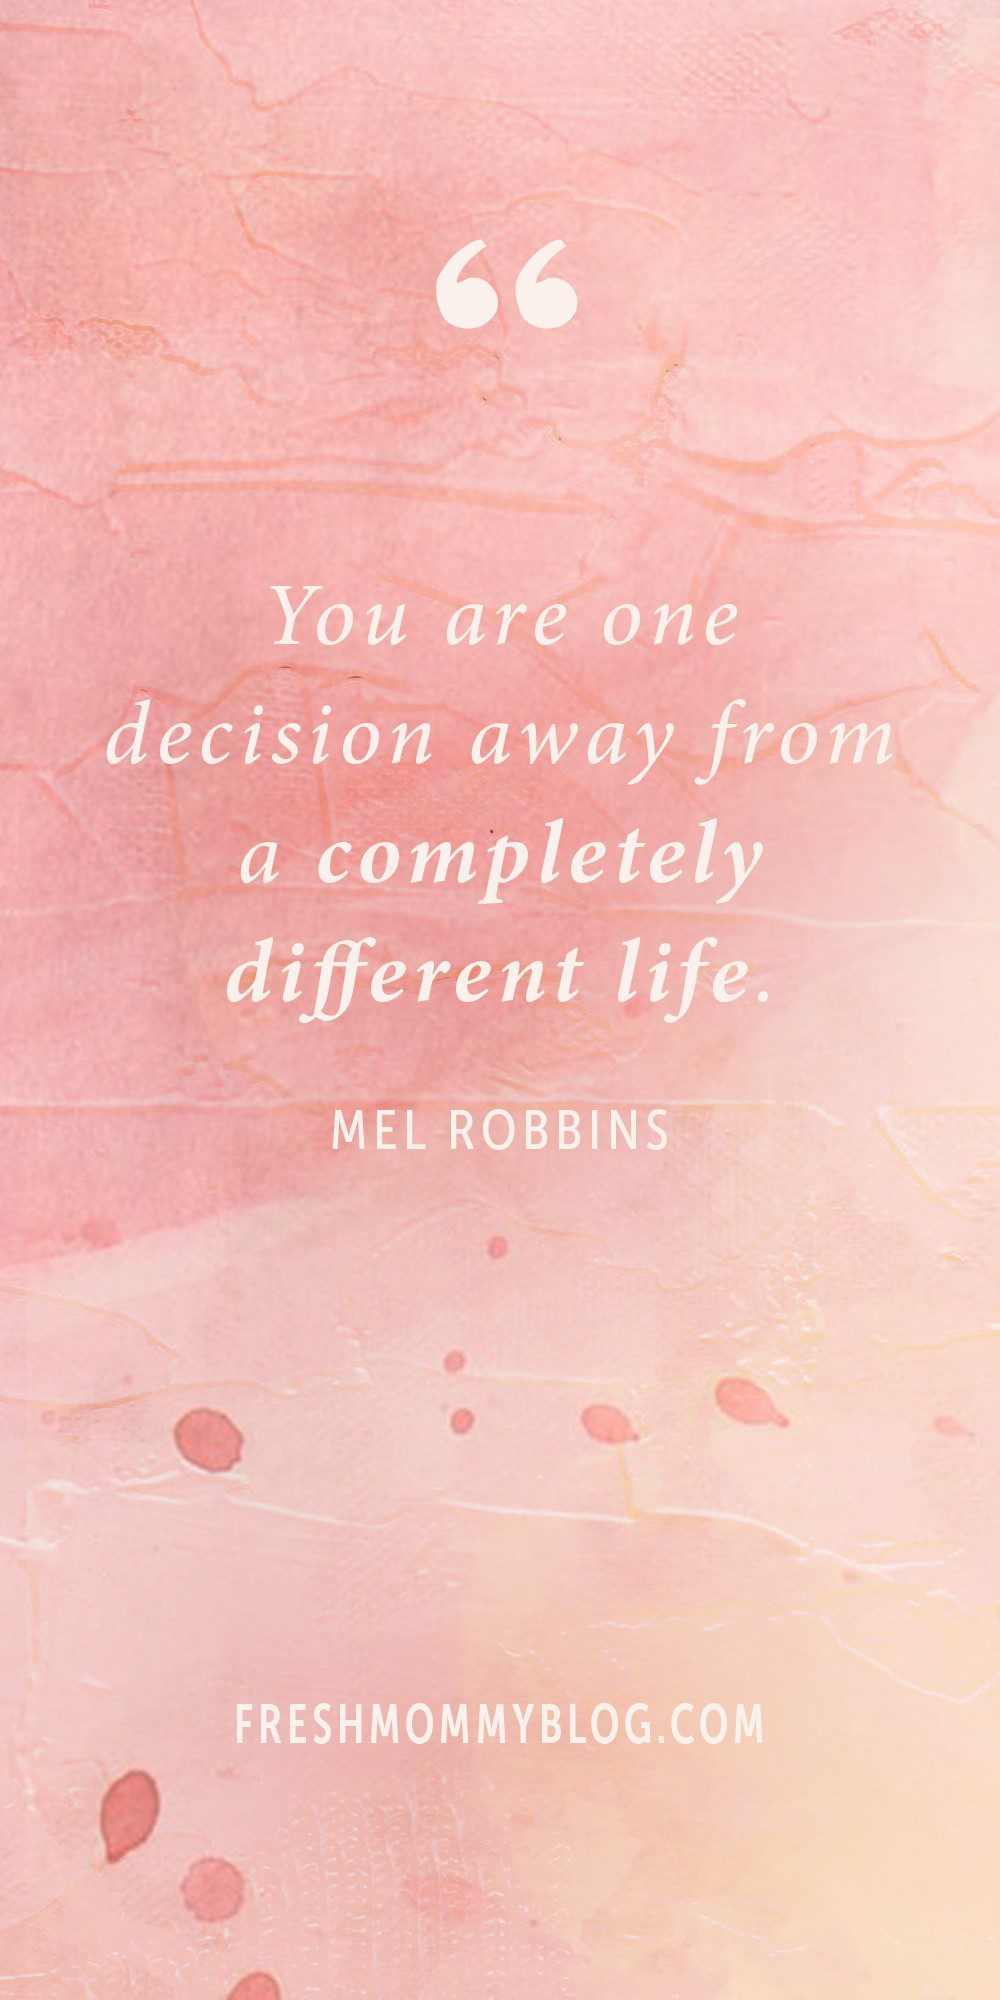 """You are one decision away from a completely different life."" Mel Robbins - Inspiring quotes for a successful year and life! 